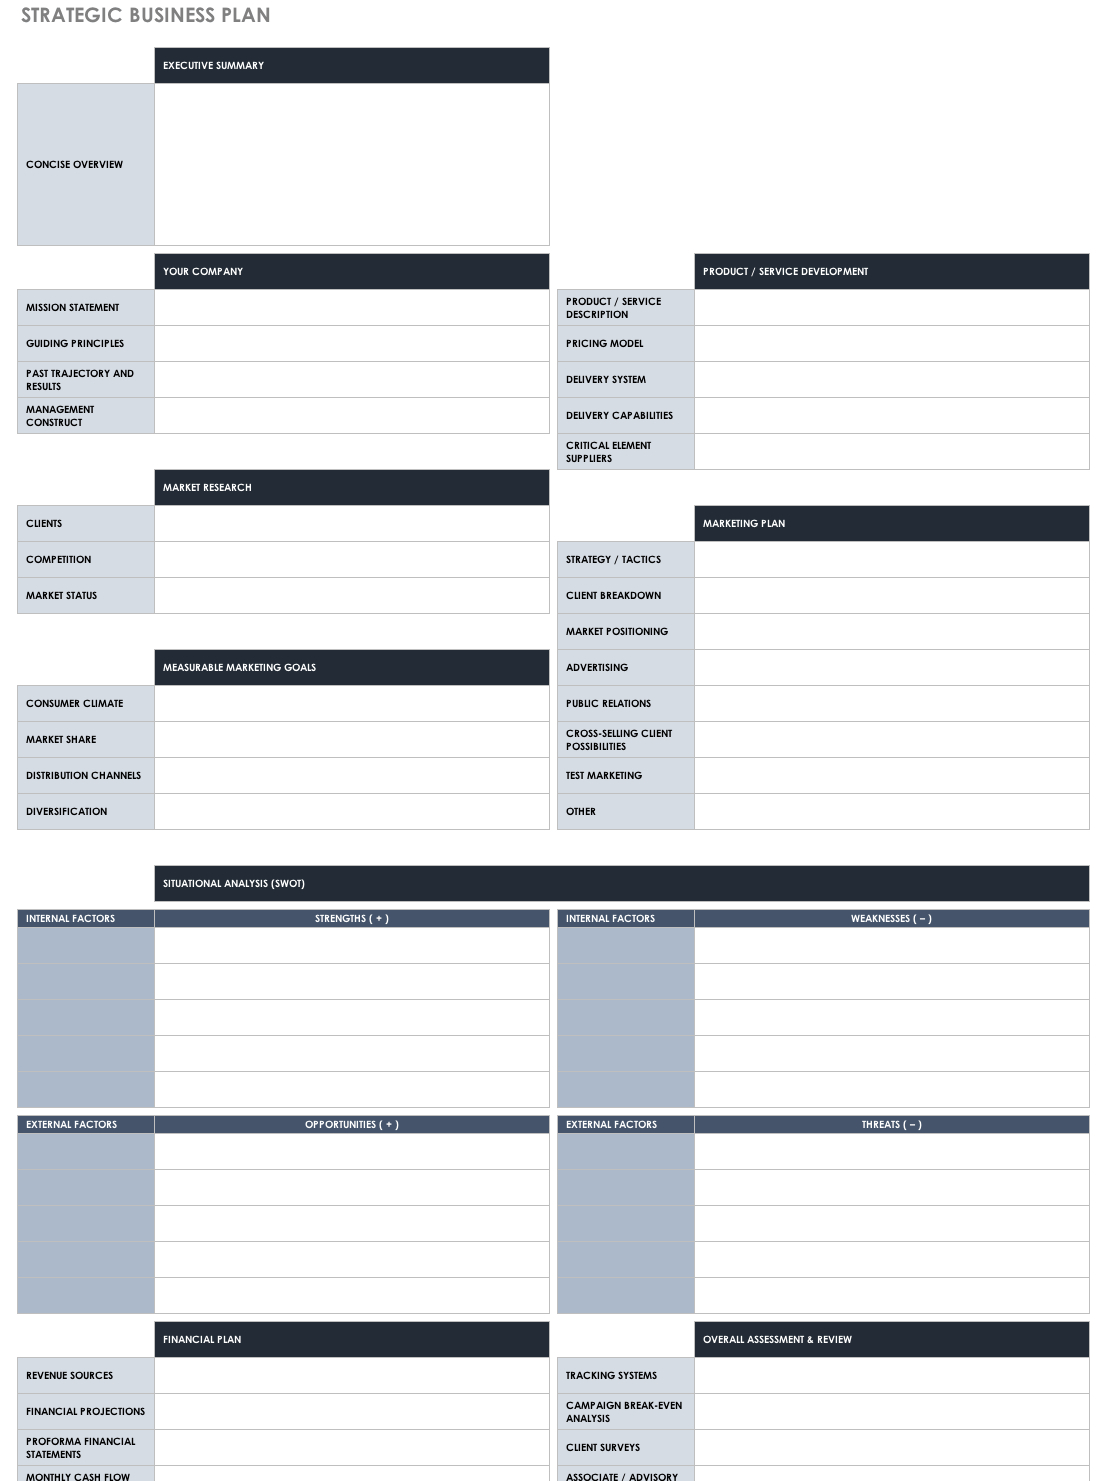 Free Strategic Planning Templates  Smartsheet Within Business Plan Framework Template